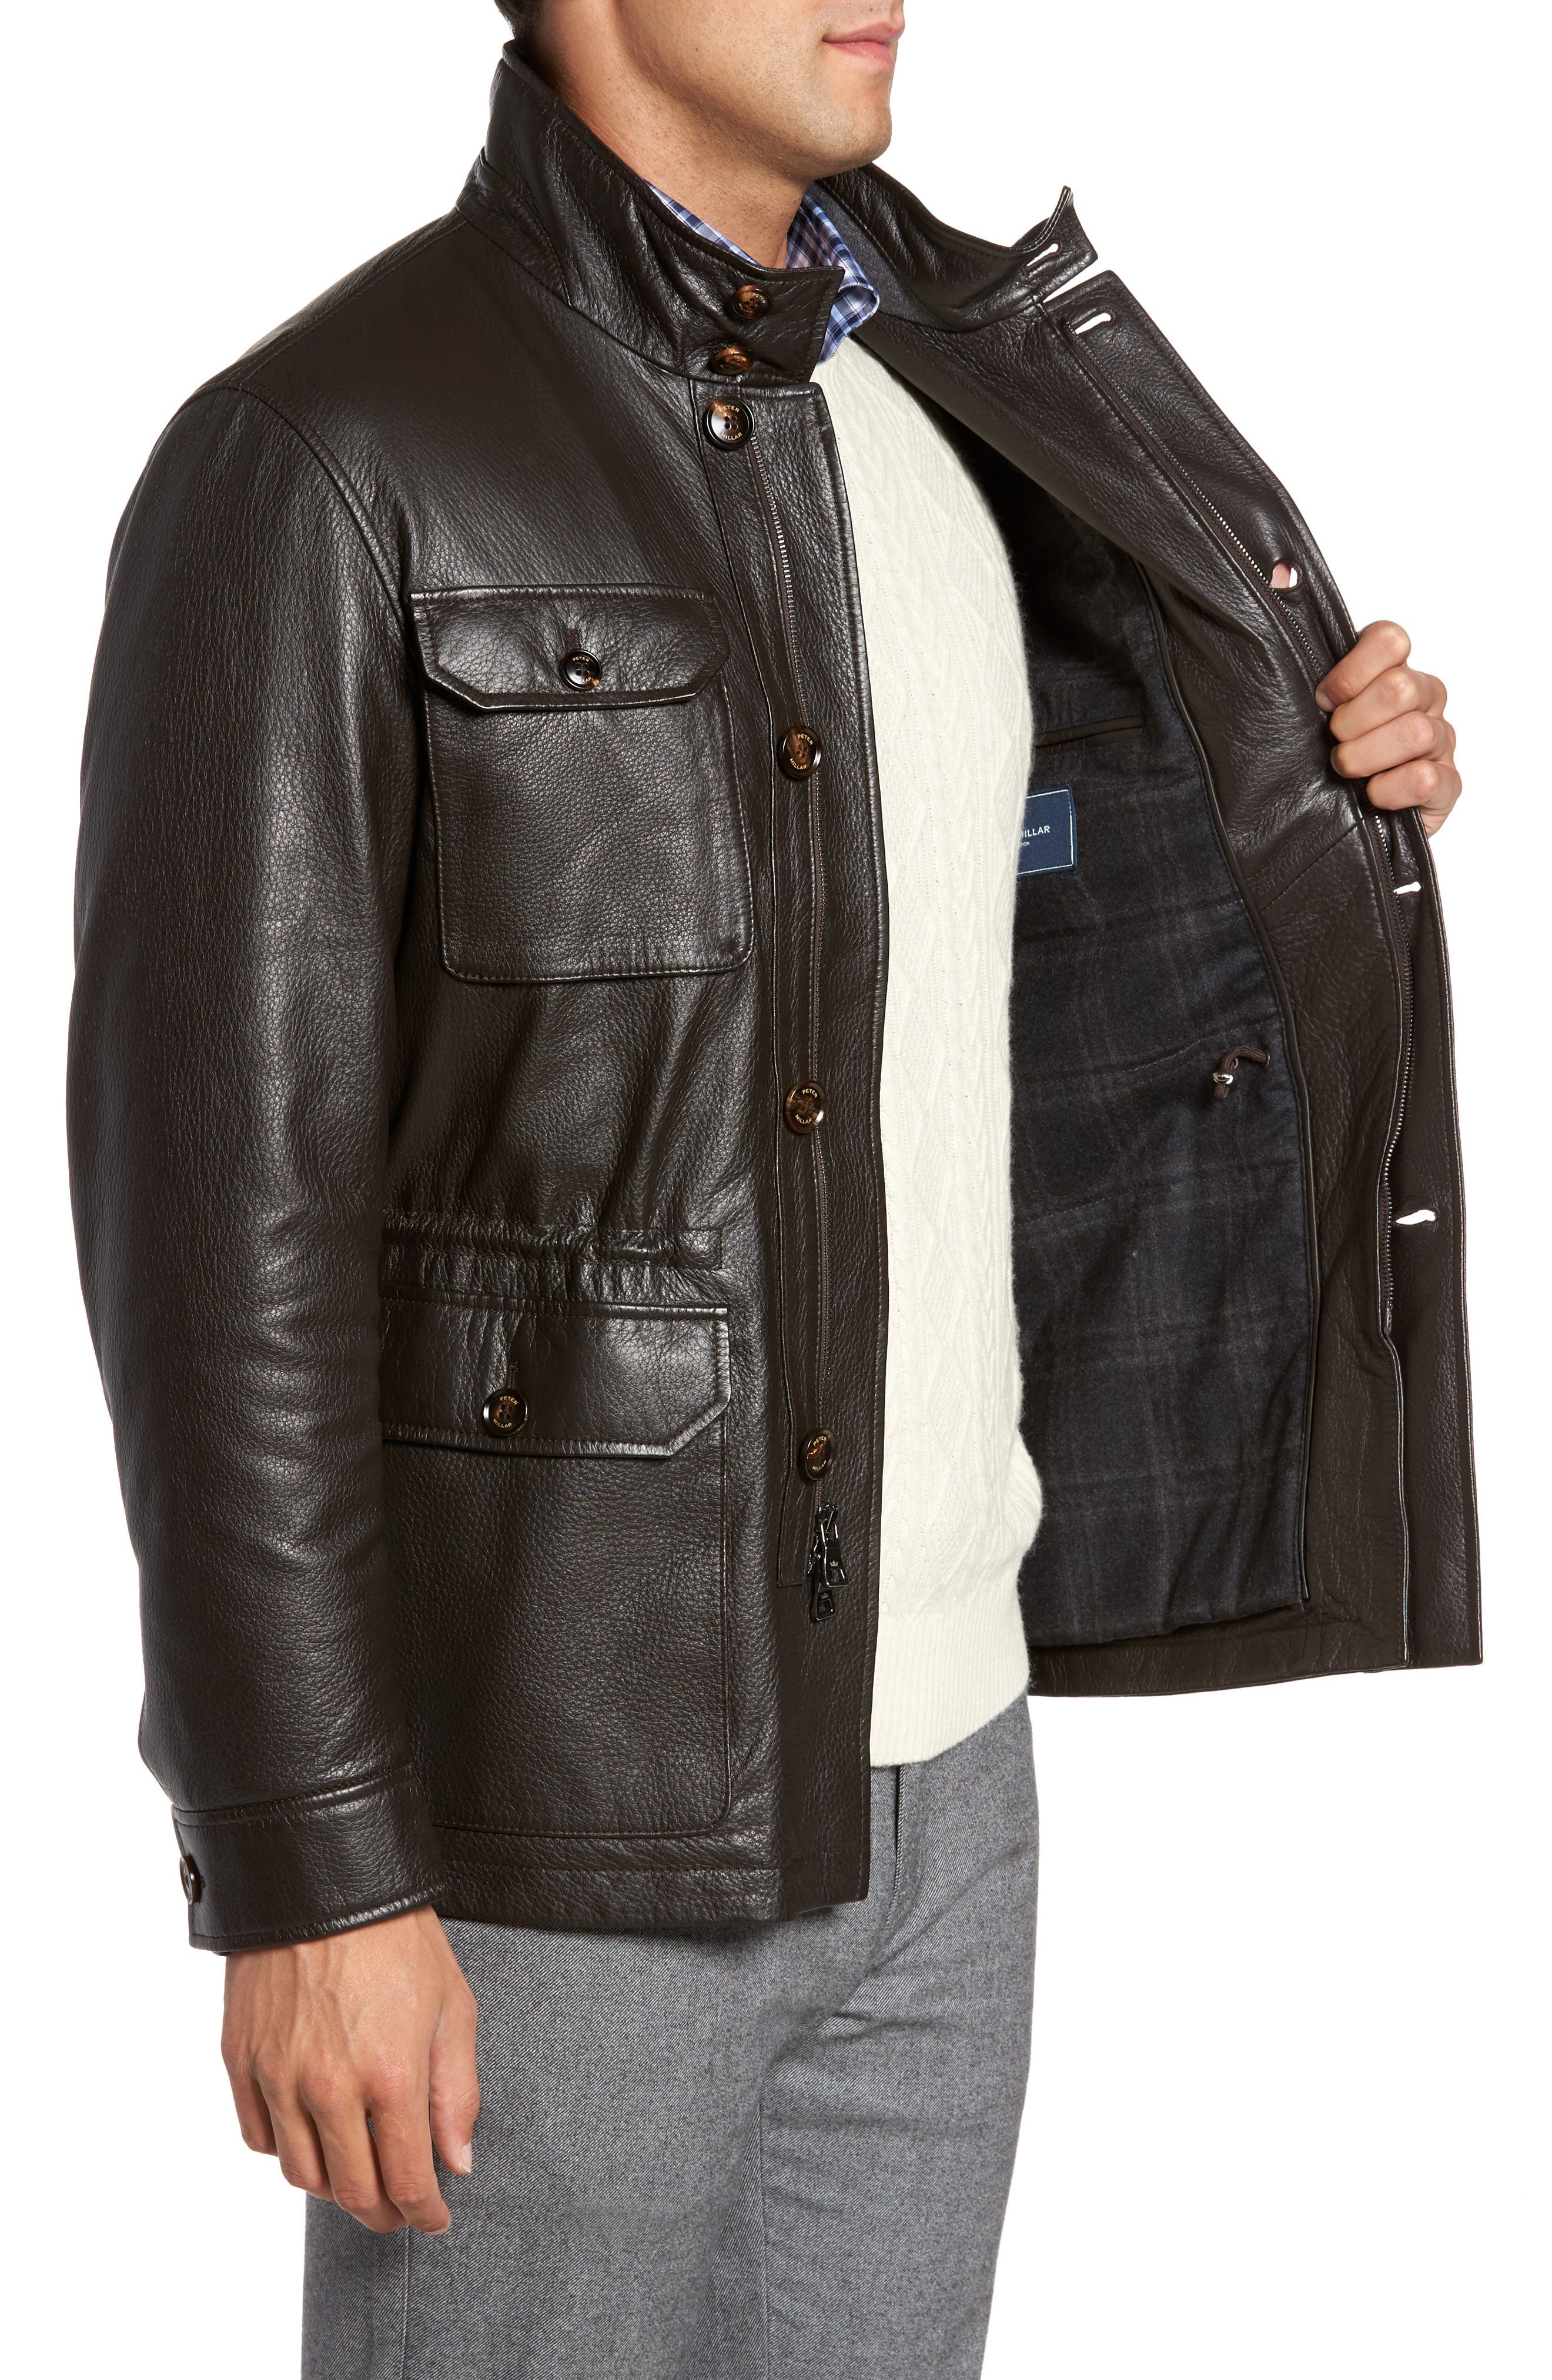 Woodland Discovery Deerskin Leather Jacket,                             Alternate thumbnail 3, color,                             203